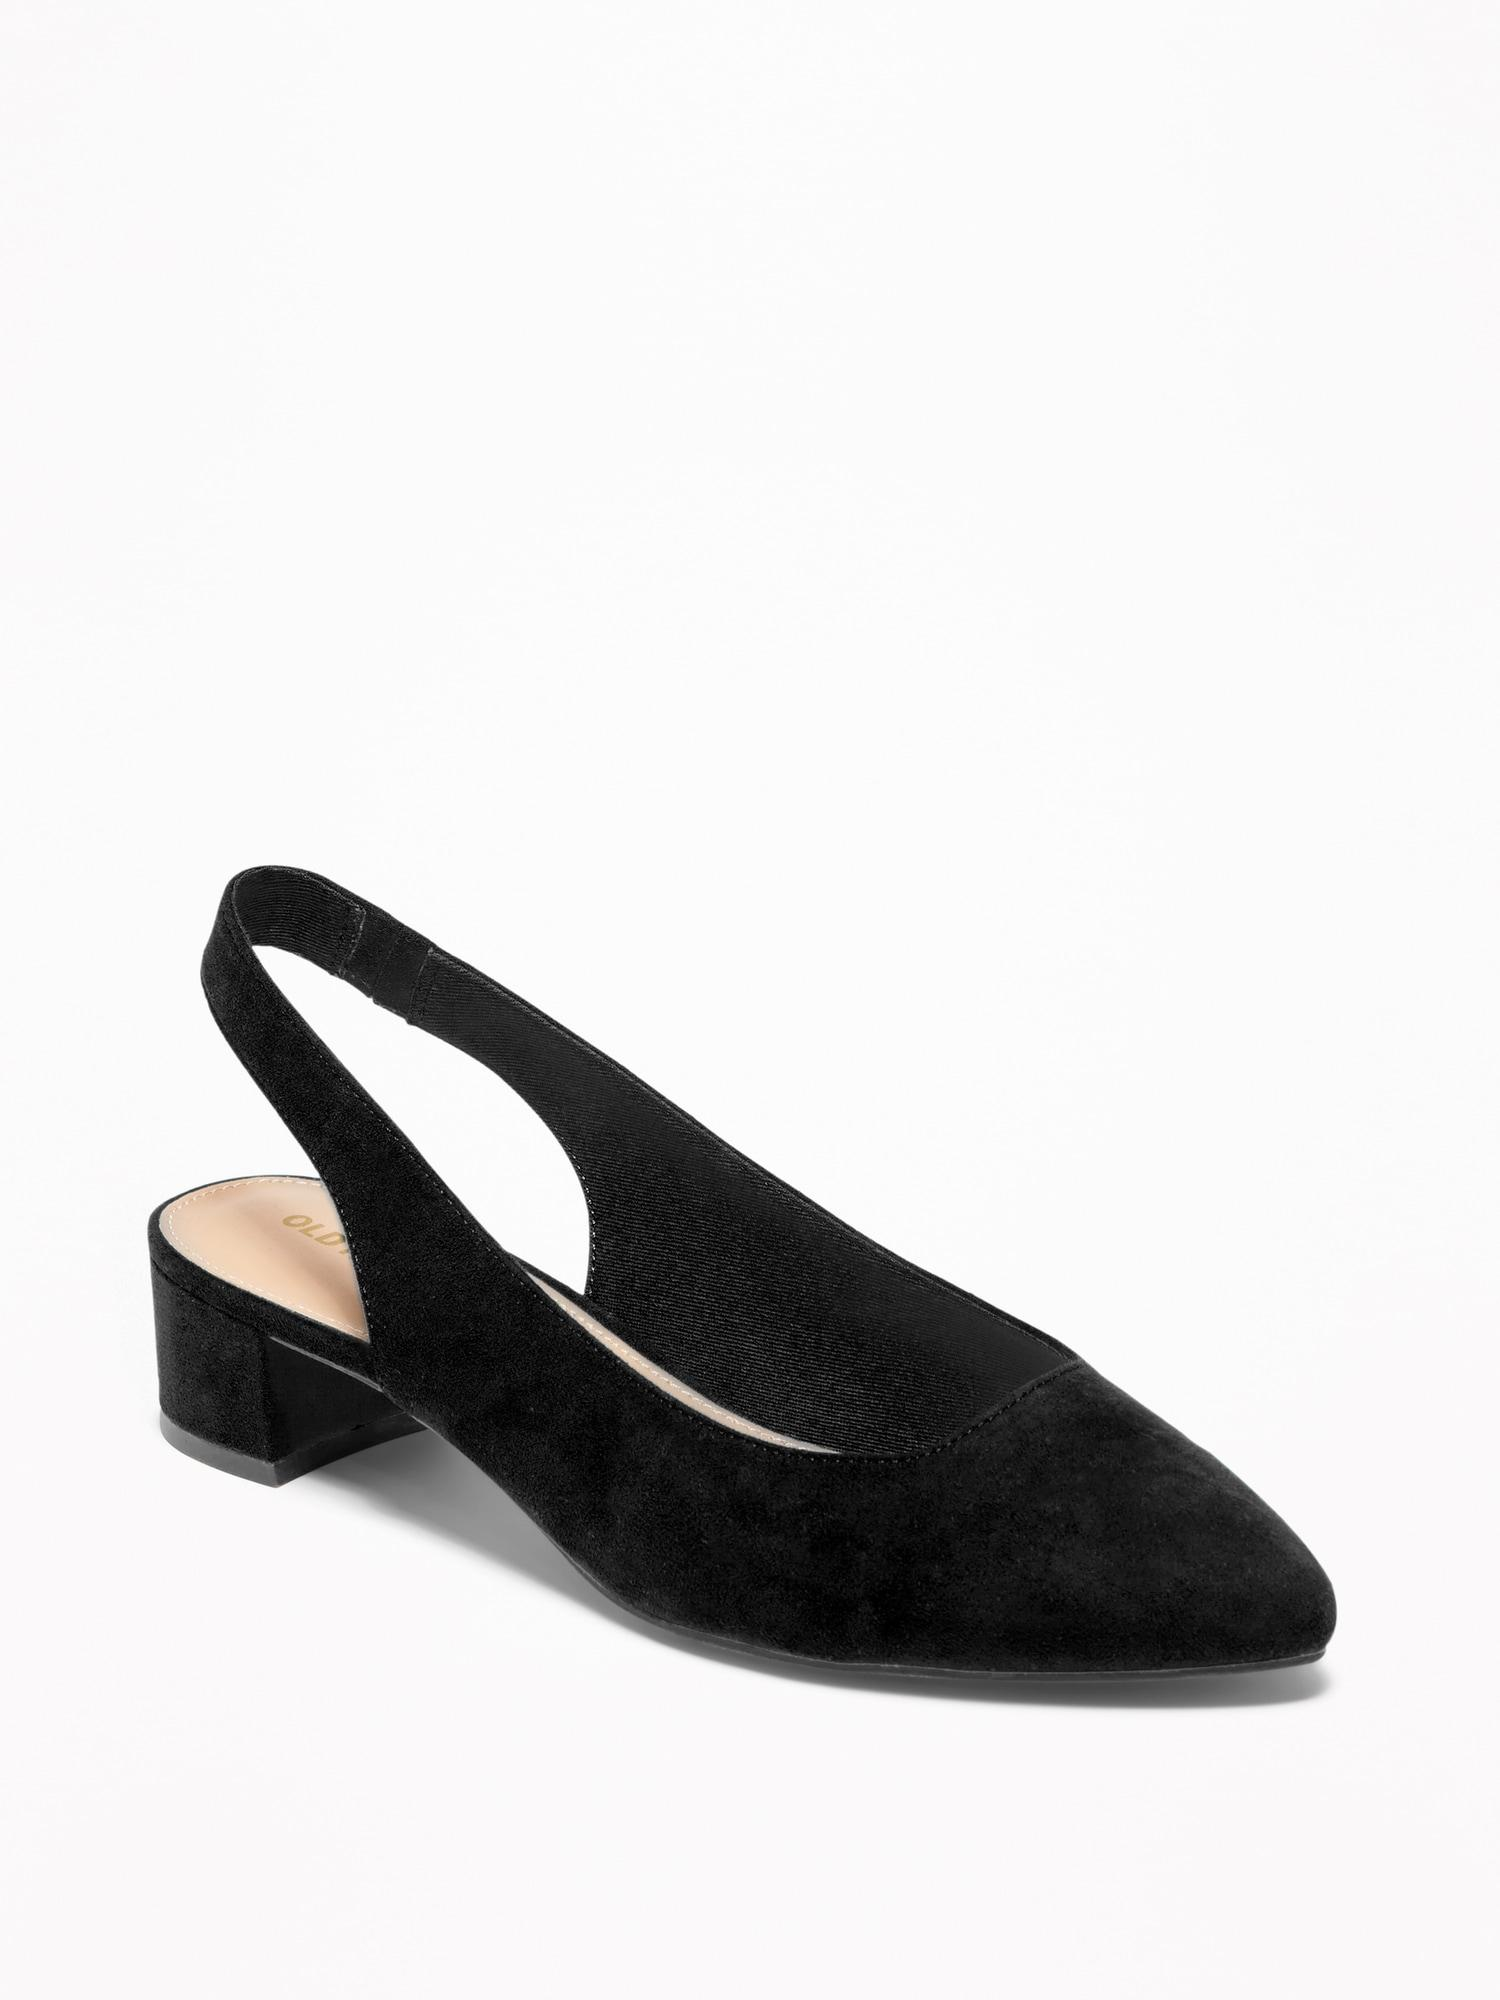 0480466d3b25 Lyst - Old Navy Faux-suede Sling-back Mid-heel Shoes in Black